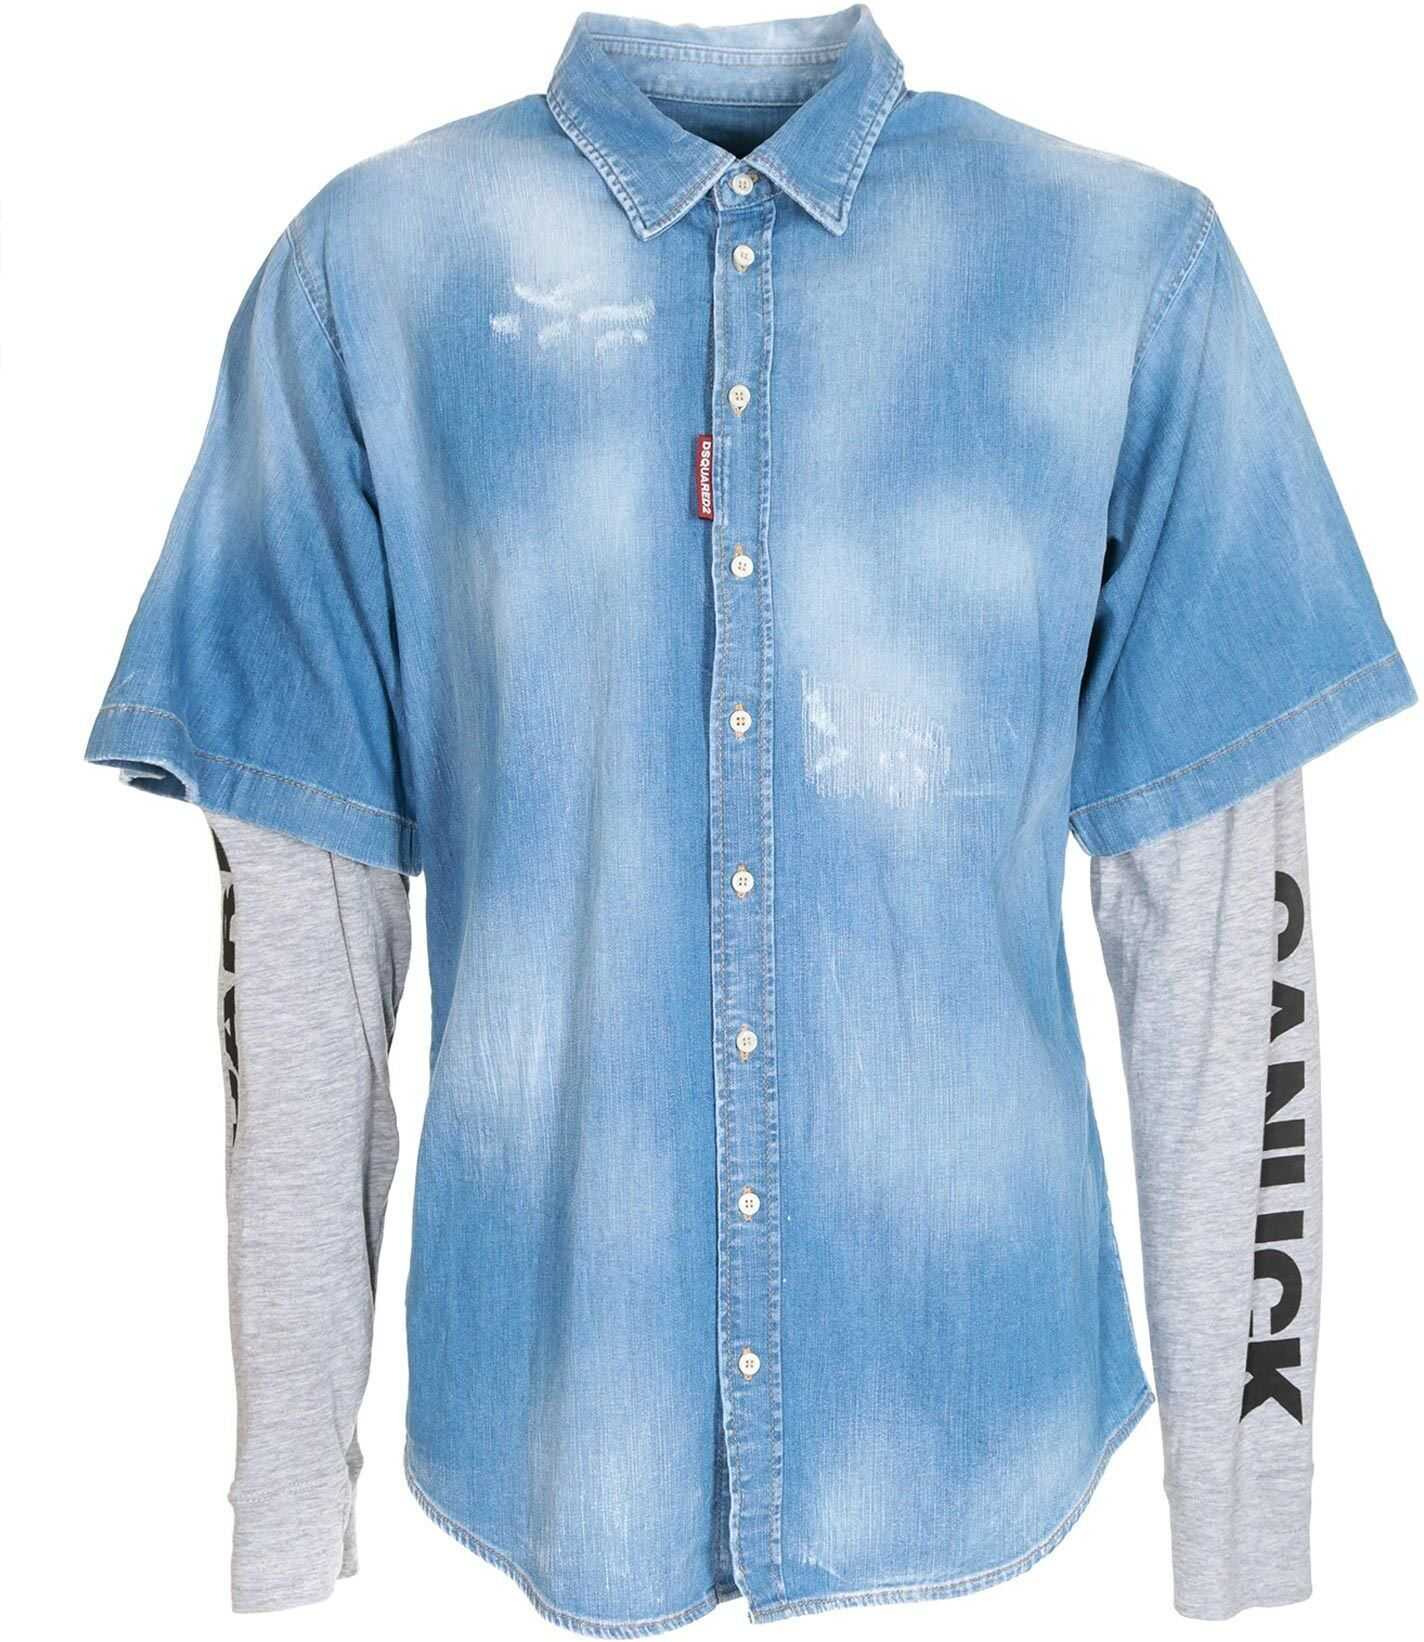 DSQUARED2 Denim Shirt With Jersey Sleeves Light Blue imagine